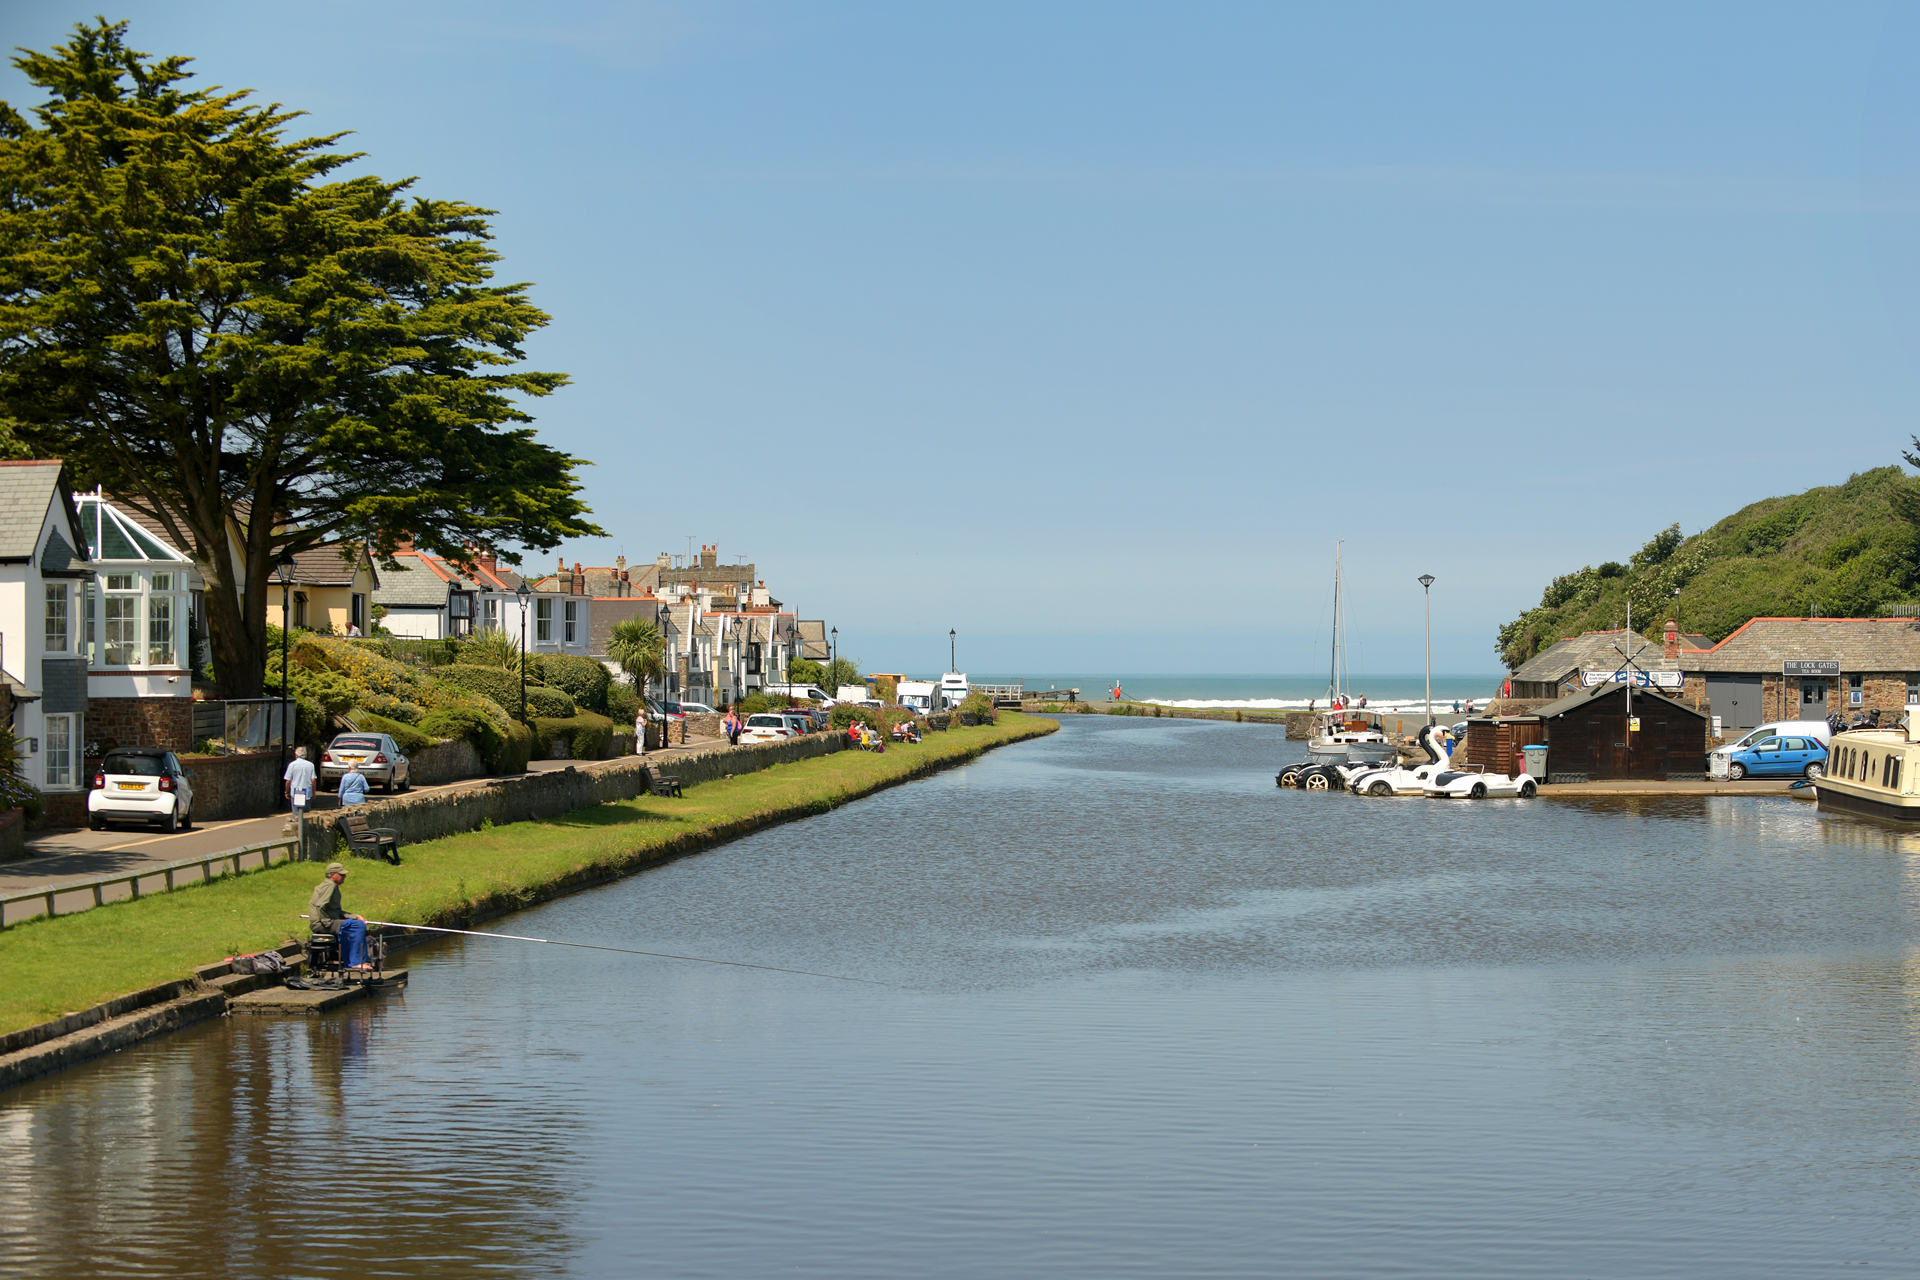 Walk, cycle or paddle along Bude Canal